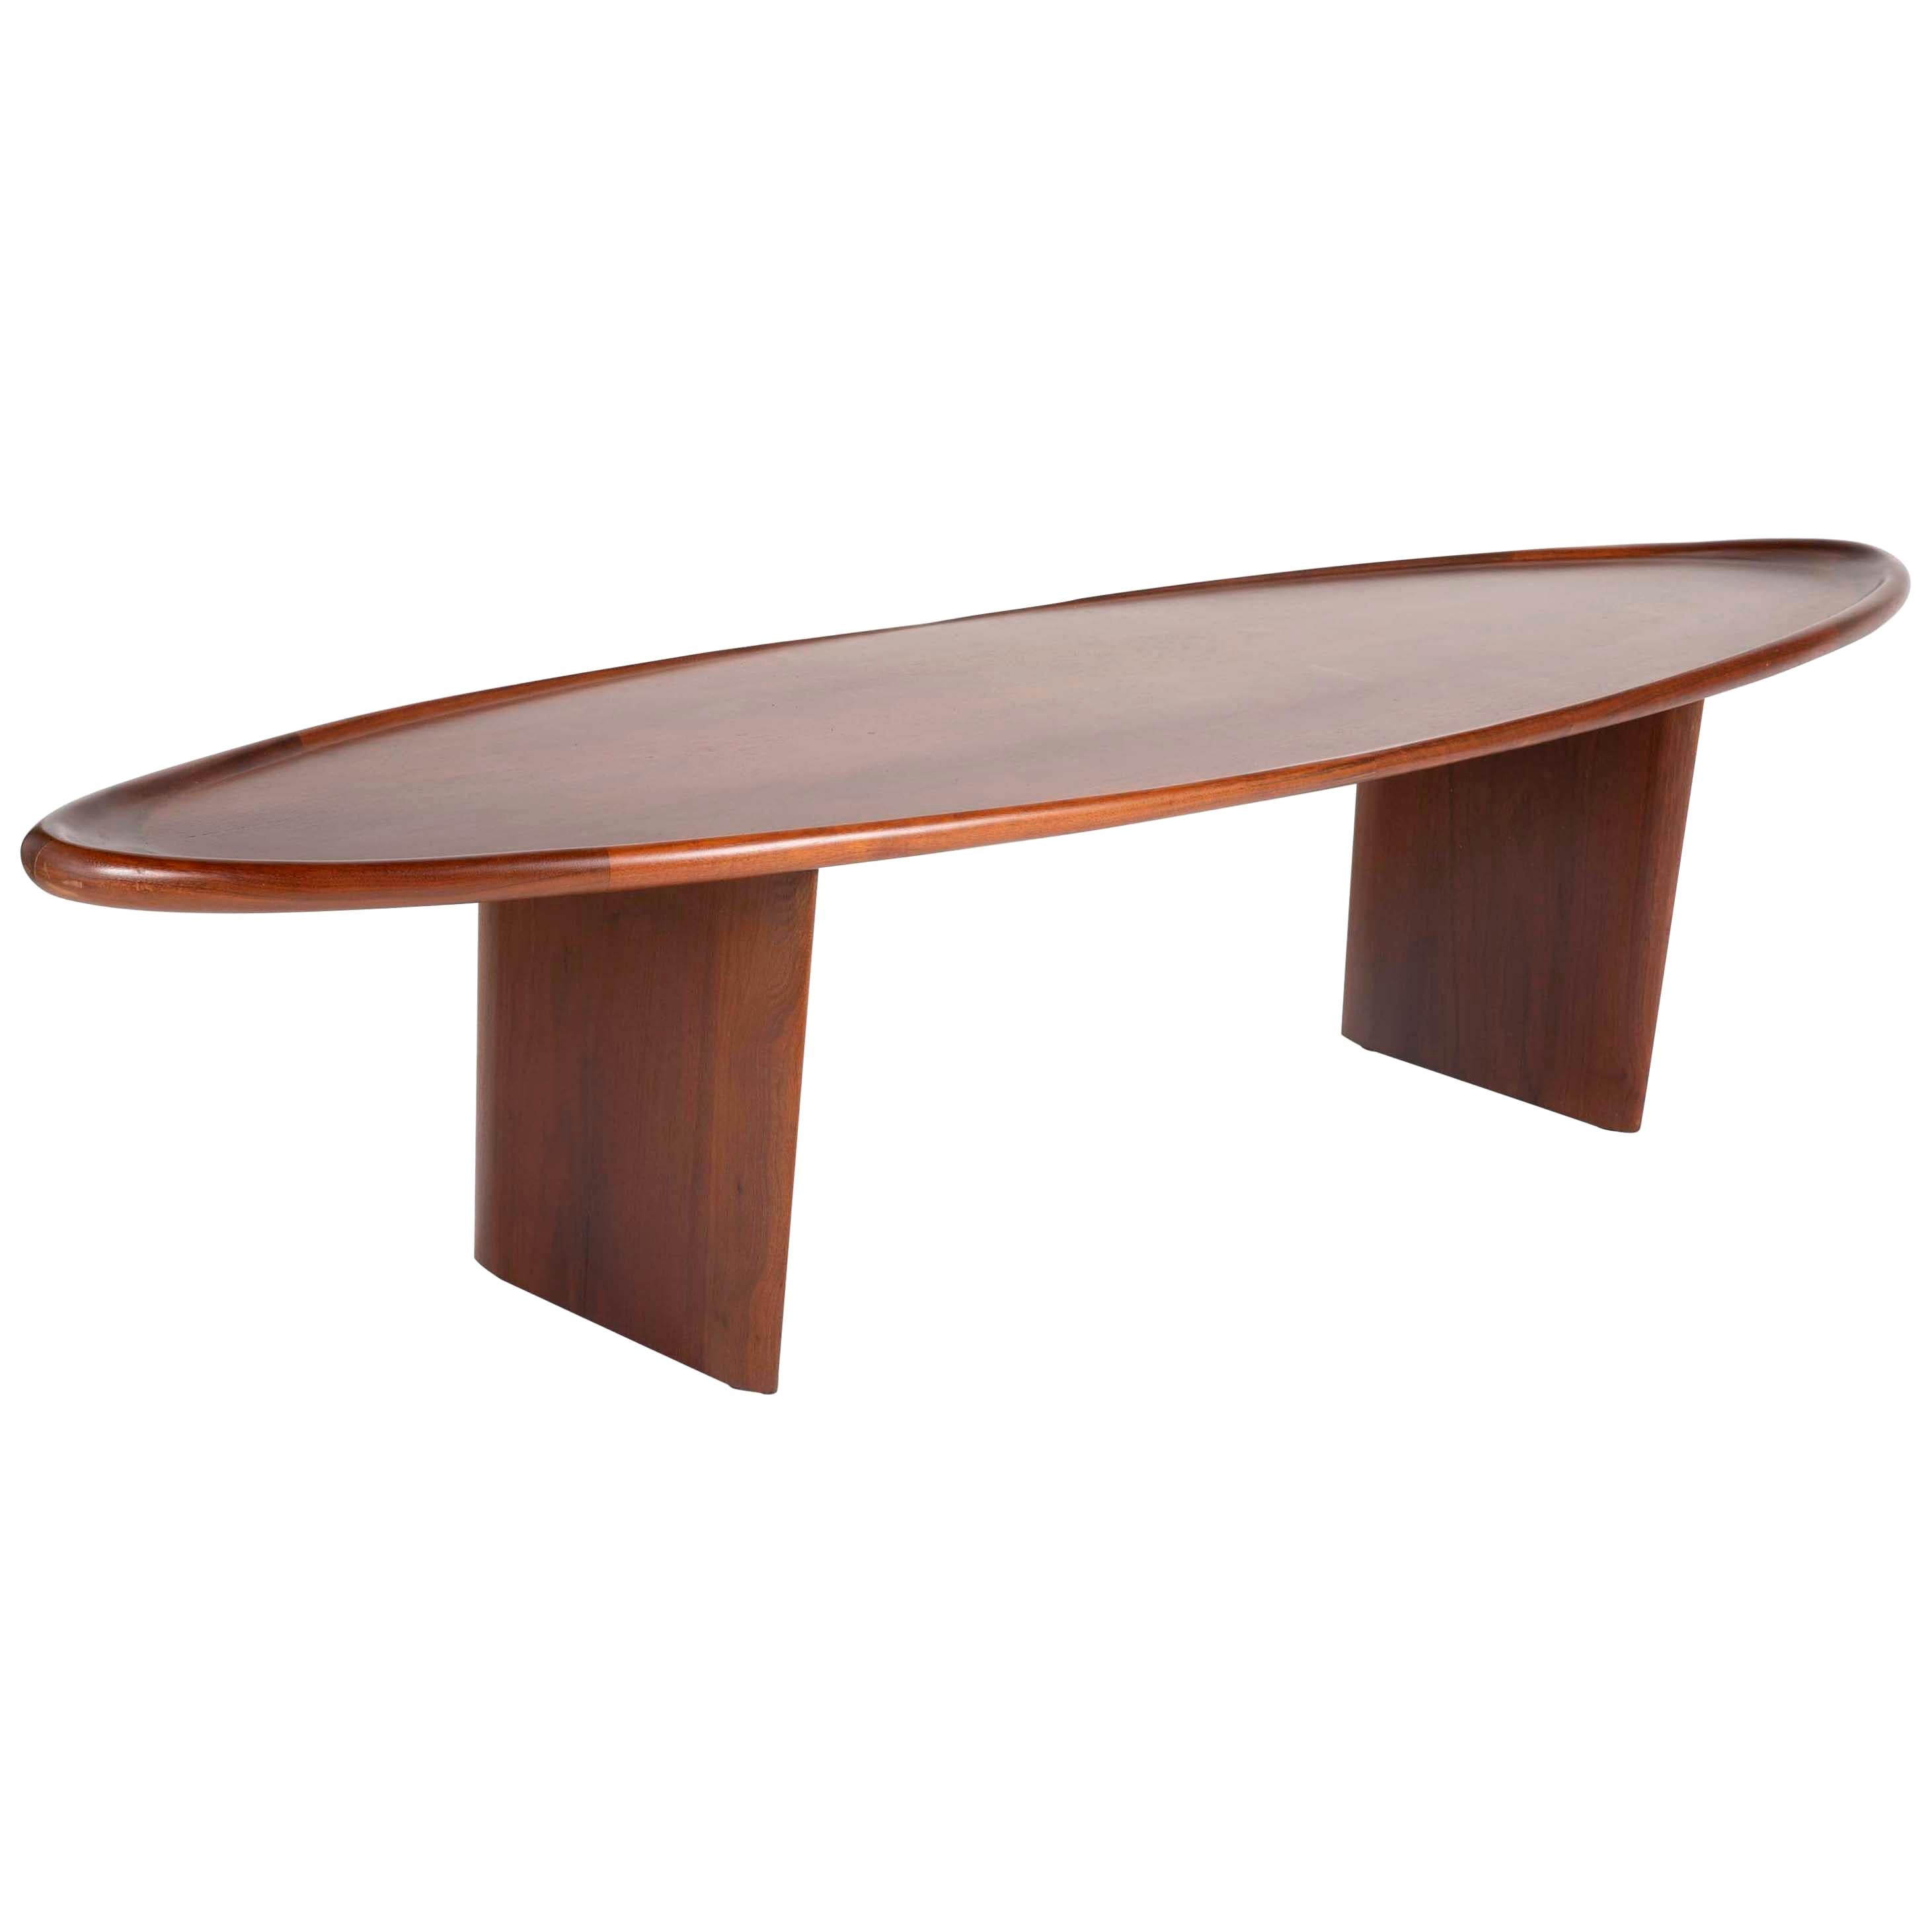 Mahogany Coffee Table Designed by T.H. Robsjohn-Gibbings for Widdicomb